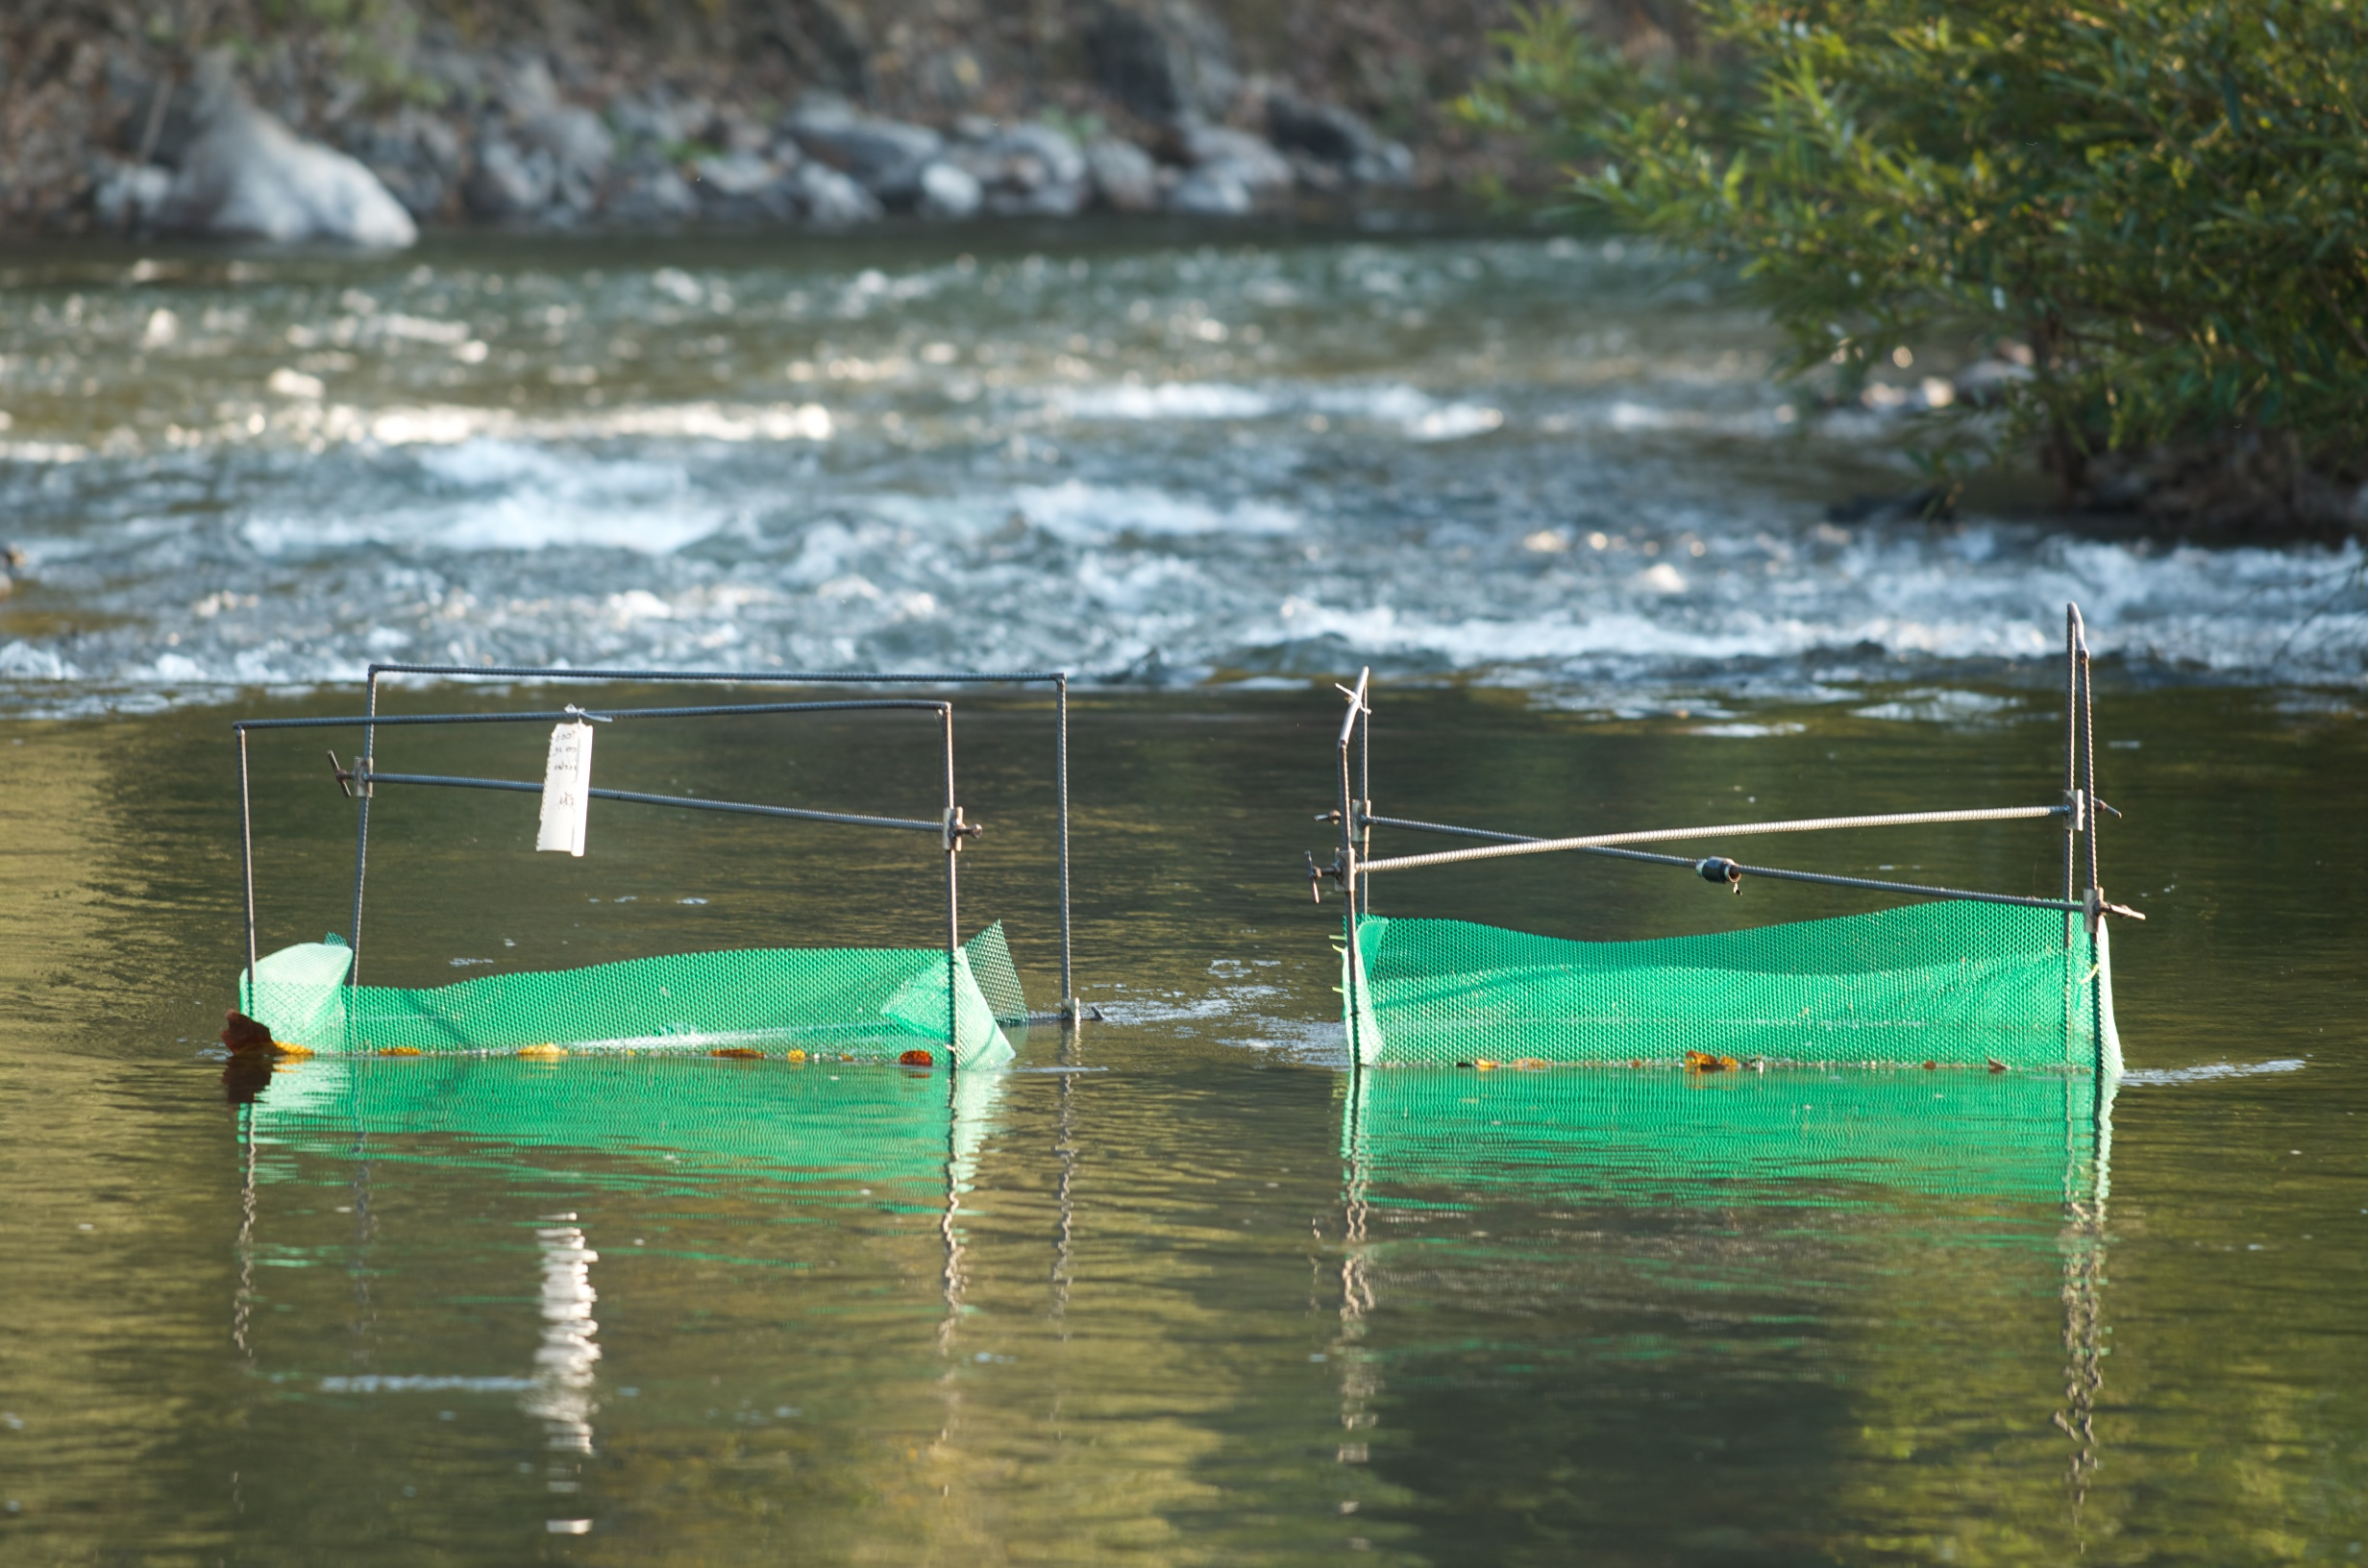 One of 12 pairs of fish exclosures and open exclosure controls used to test the role of fish in the Ngao River ecosystem.